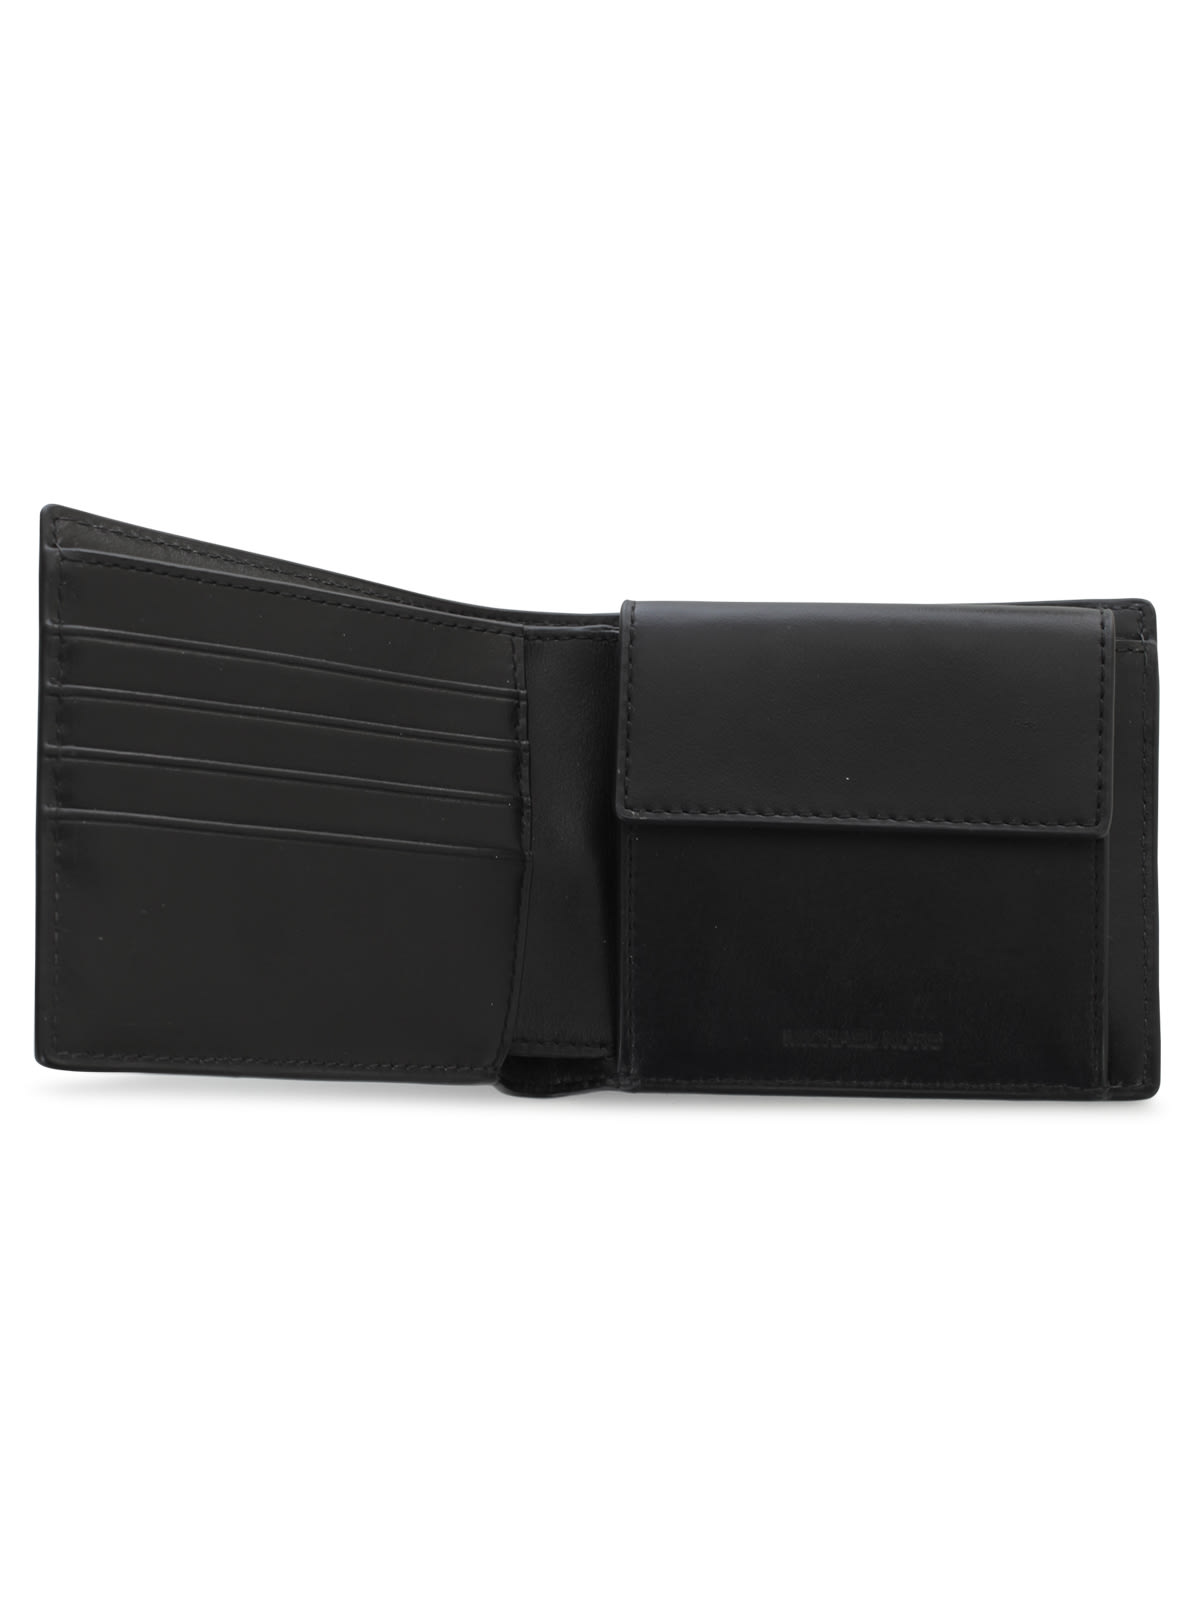 Best Authentic Michael Kors Billfold With Coin Pocket